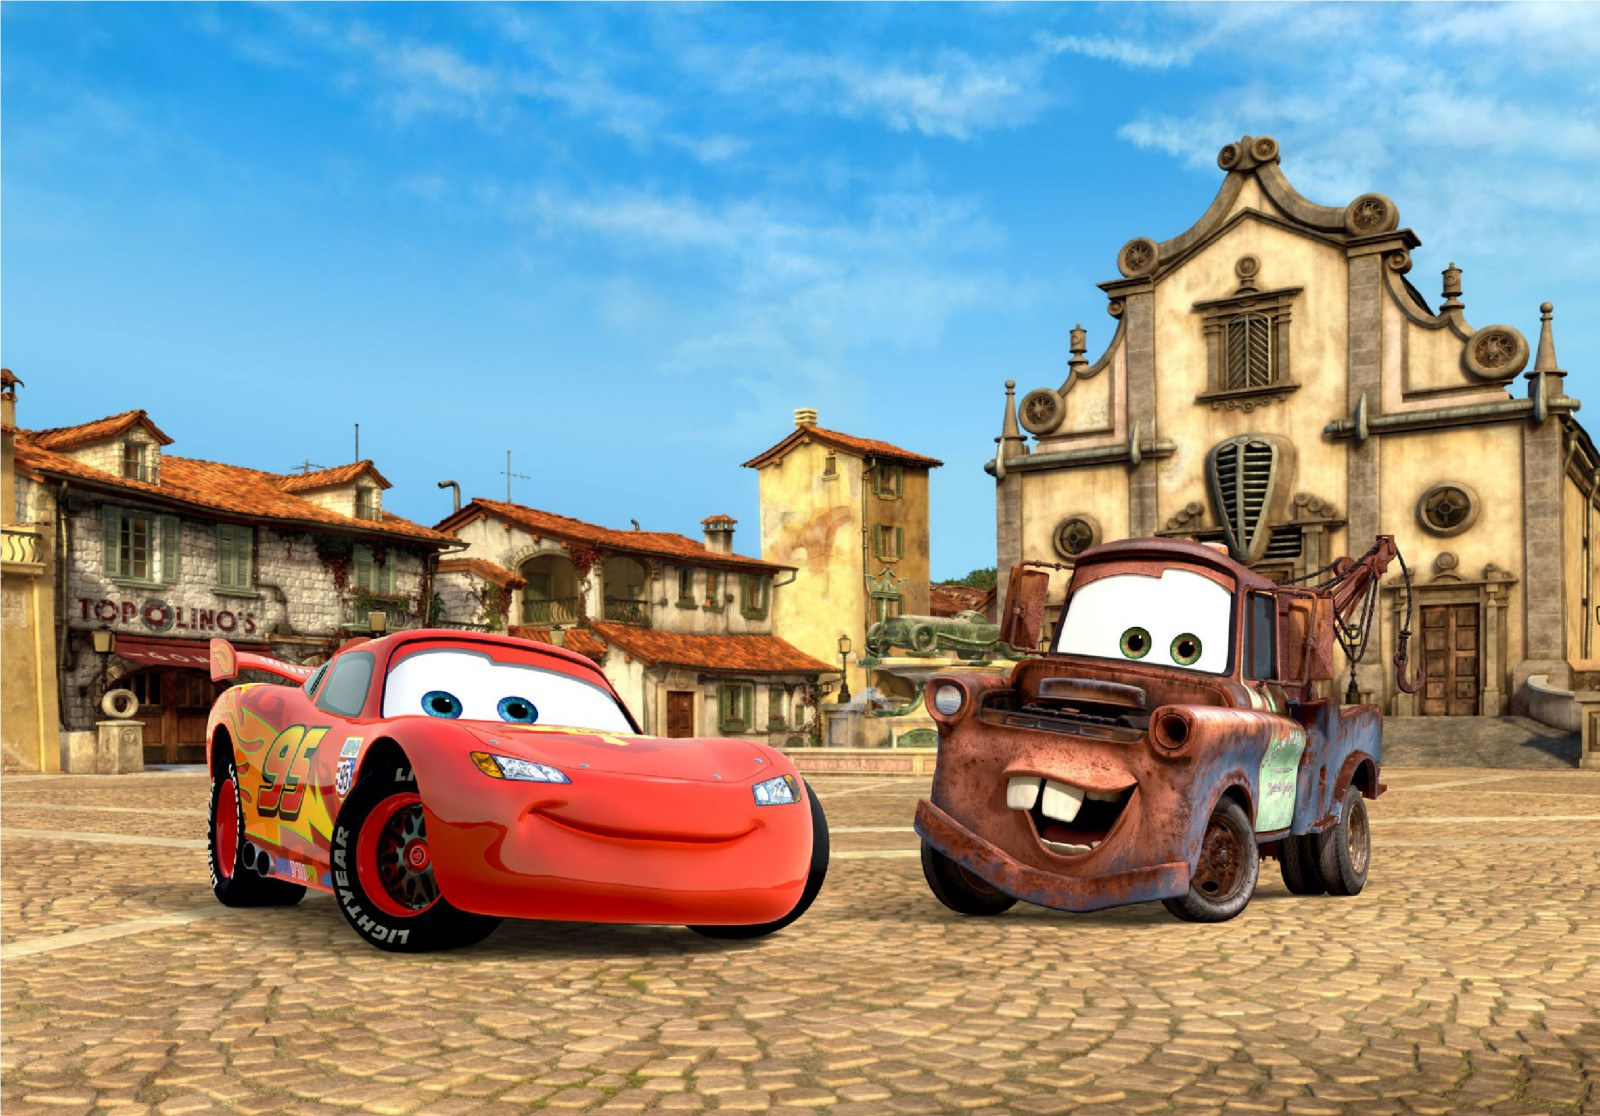 Fototapete Tapete Disney Cars   Papier Vlies Des 3 - Disney Cars Tapete